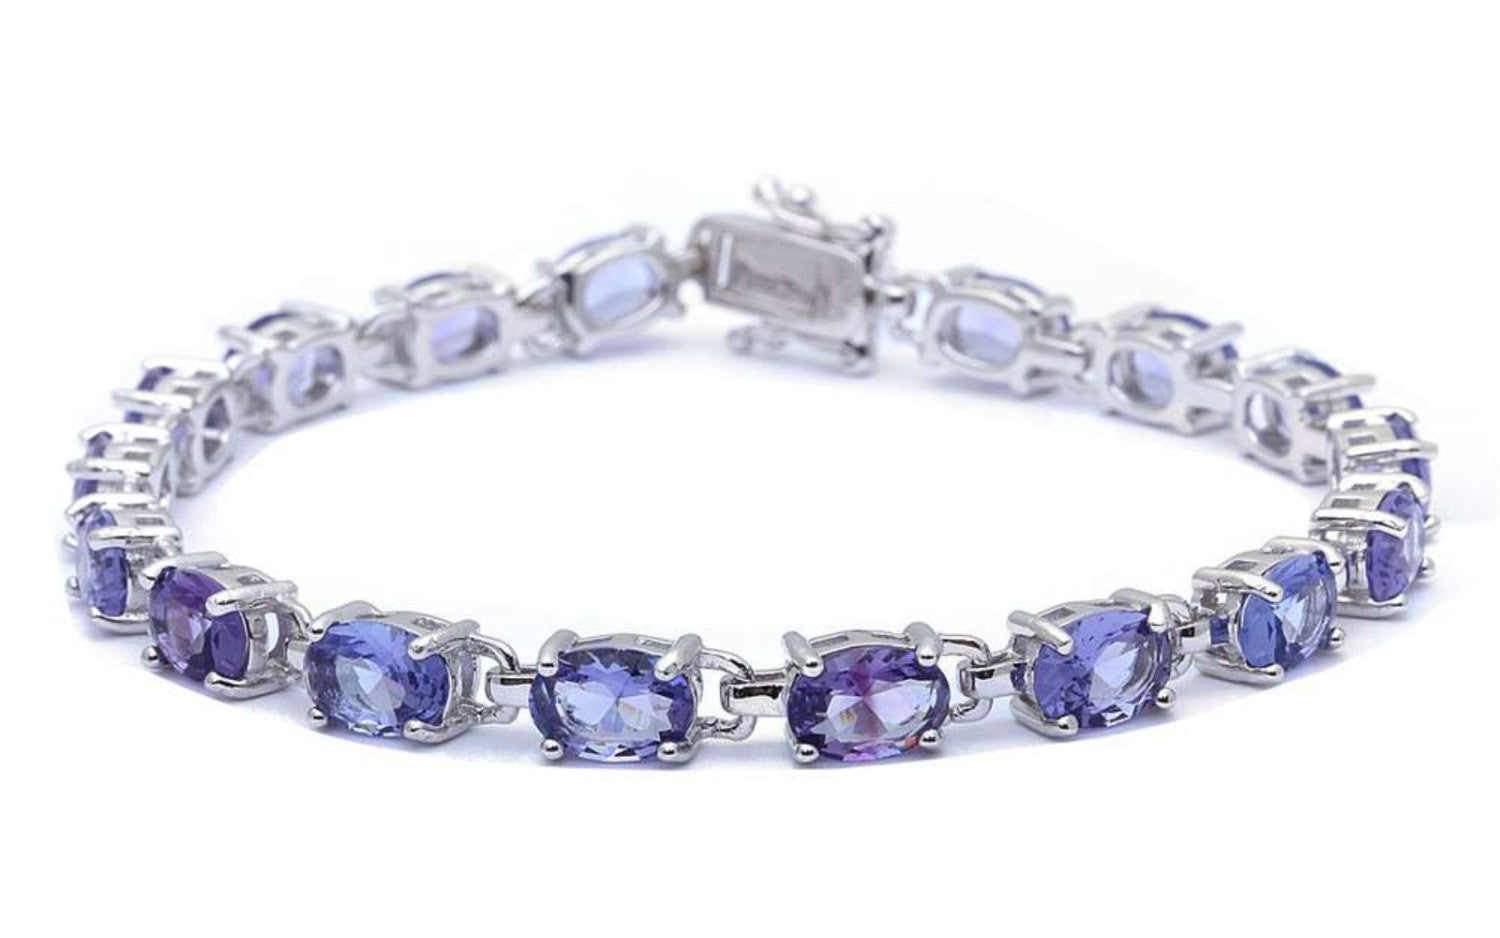 Ladies Classic Tennis Bracelet 13.5 Carat Oval Cut Tanzanite CZ Solid 925 Sterling Silver Solitaire Wedding Engagement Tennis Bracelet